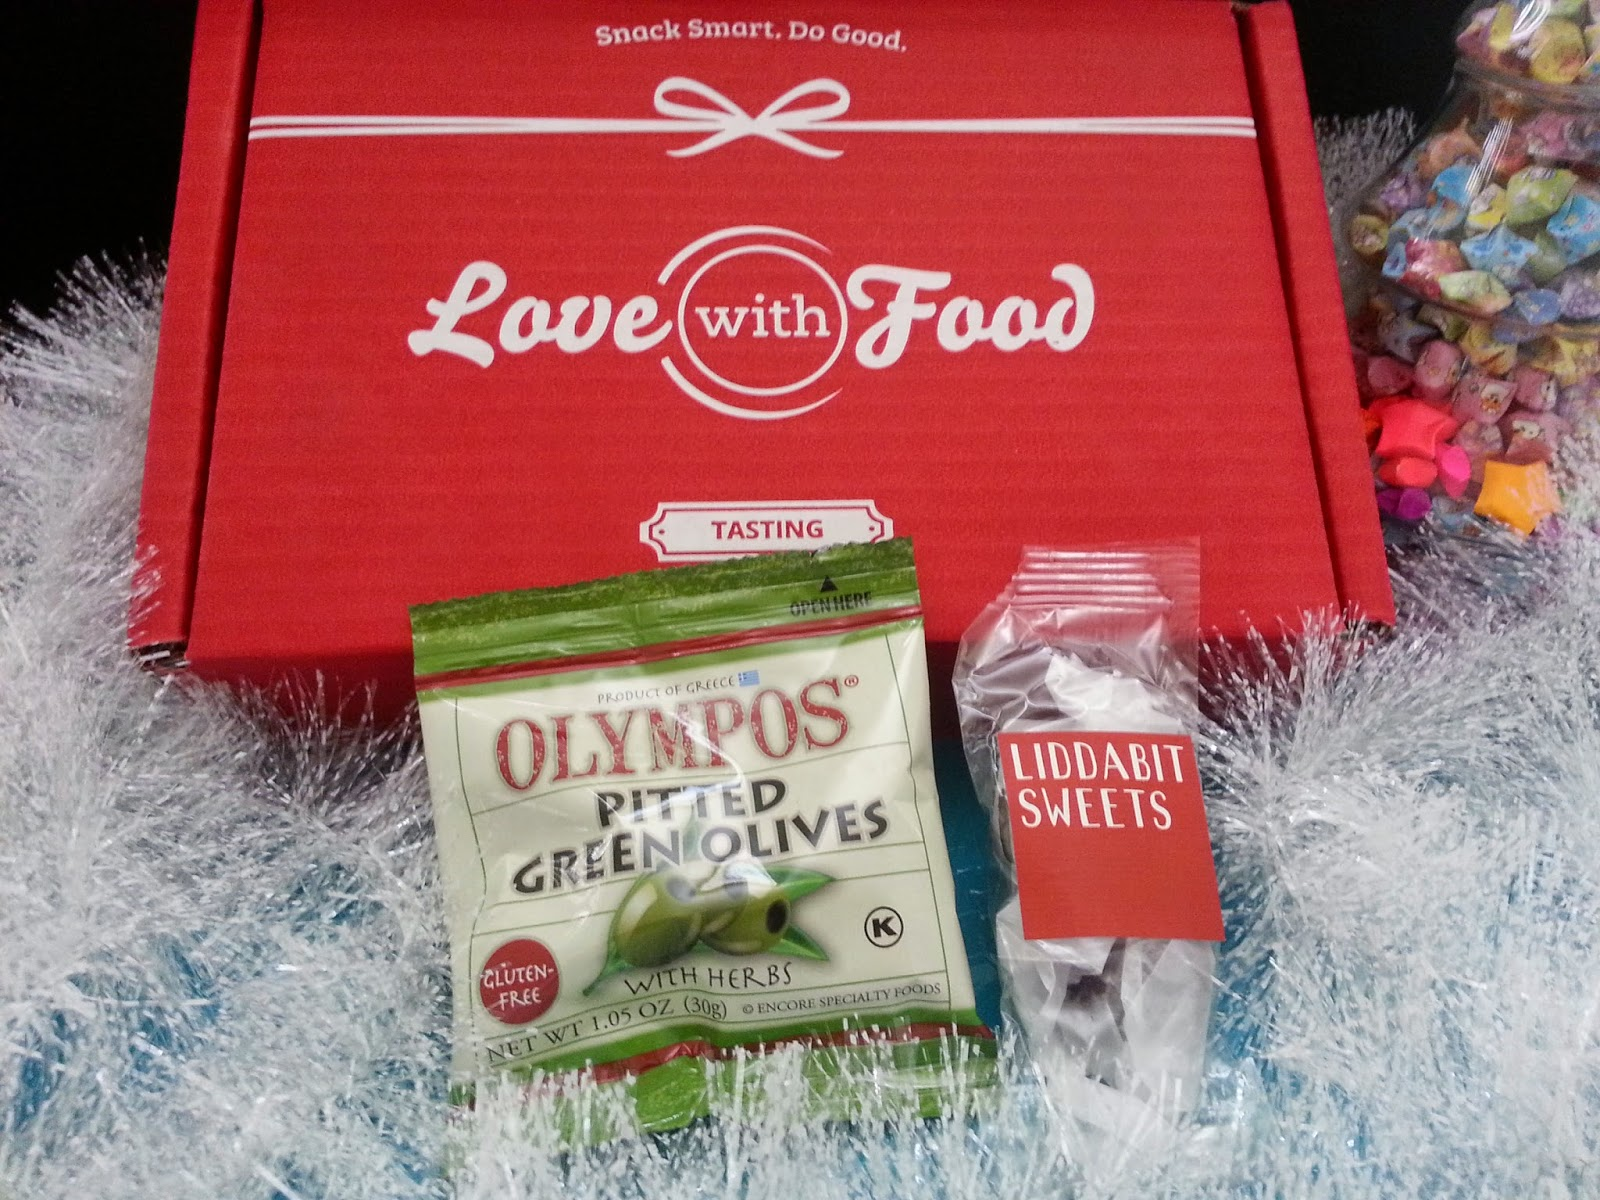 Olympos Pitted Green Olives and Liddabit Sweets Dark Chocolate Sea Salt Caramels